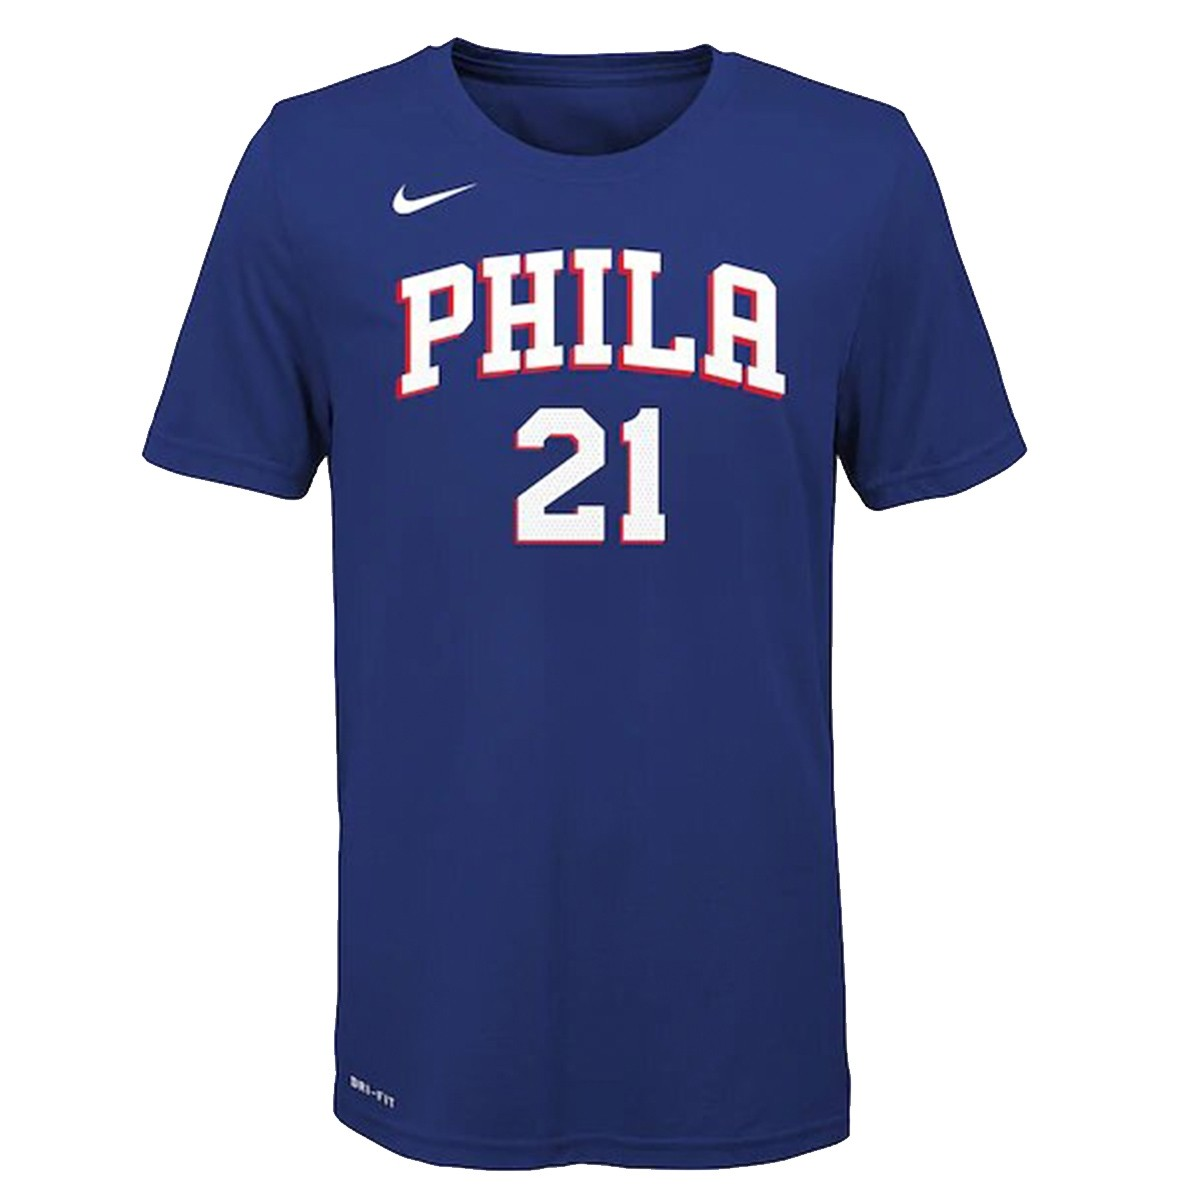 Nike Junior NBA Sixers Nick Name Tee Embiid 'Icon Edition'